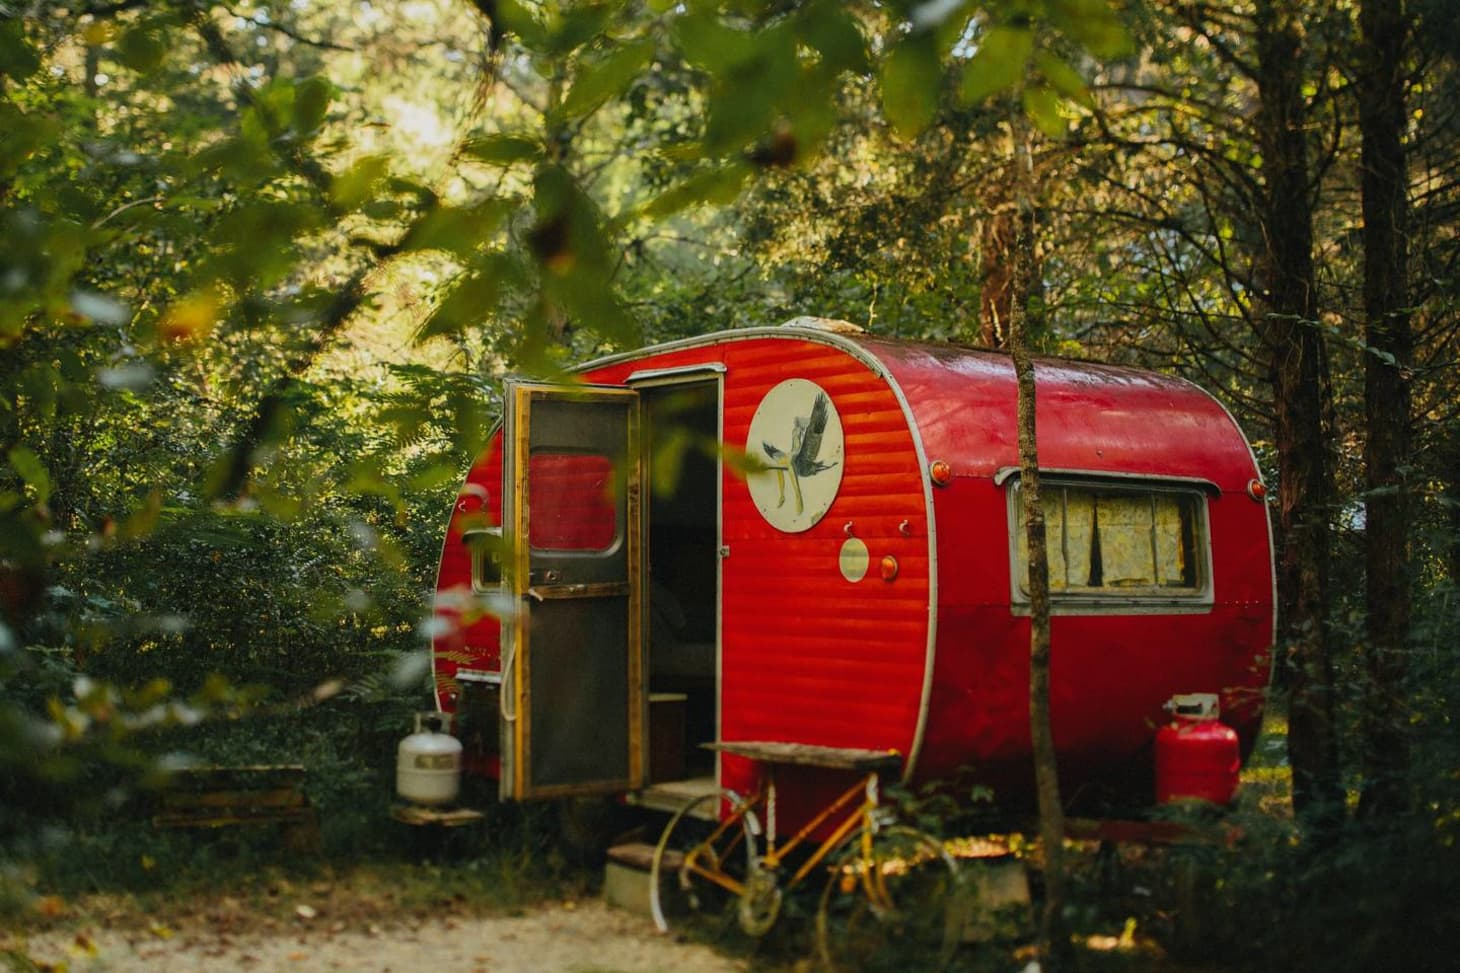 Best Airbnb Airstream and Camper Rentals | Apartment Therapy